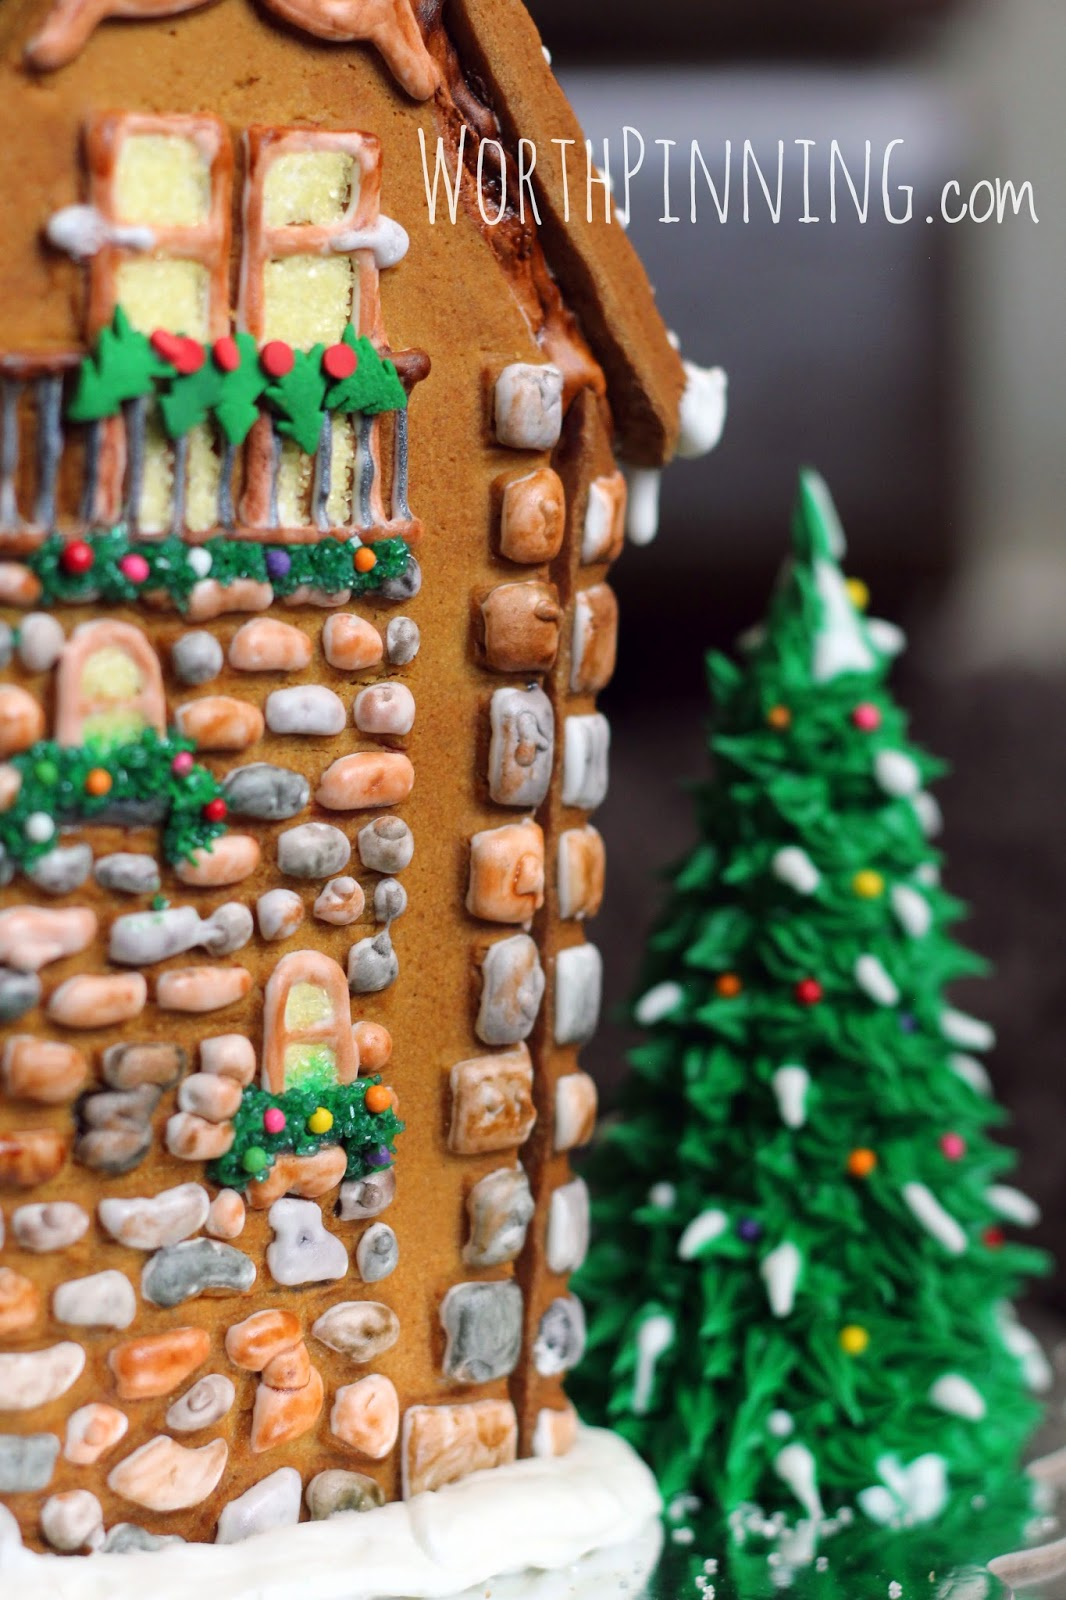 Trend My gingerbread house sold last year at a charity auction This new chateau will stay at my house